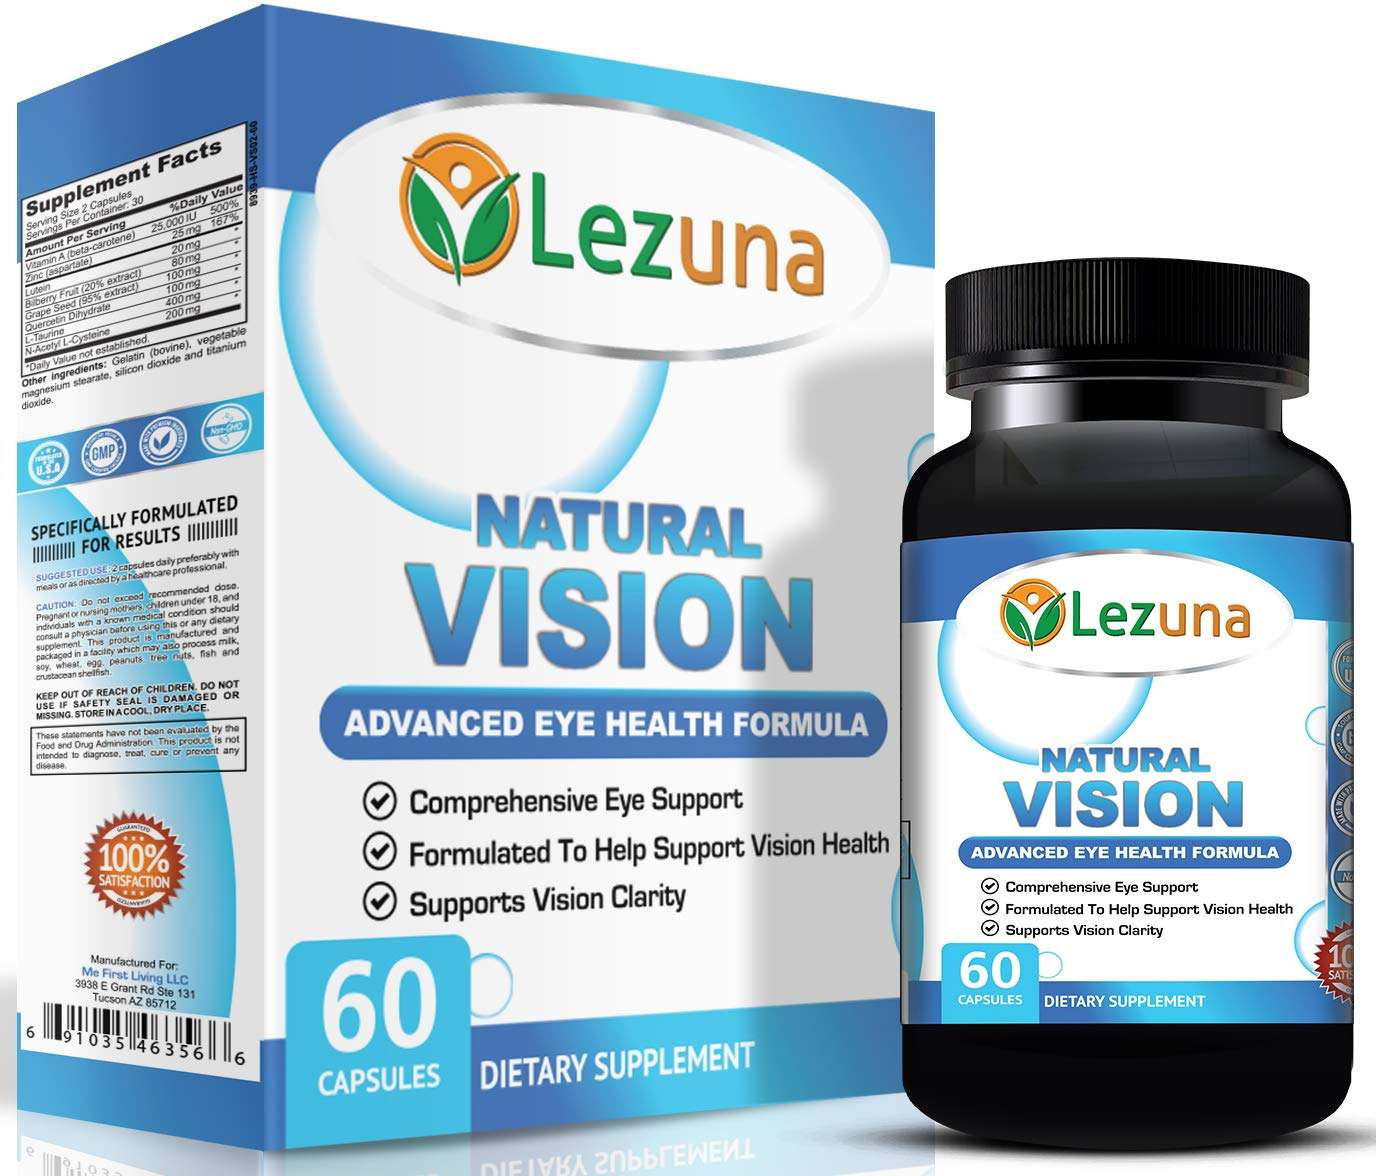 Lutein Eye Health Vision Supplement - Lutein, Bilberry Extract, Vitamin A, Zinc and More. Supplements for Healthy Eyes & Retina - 60 Capsules